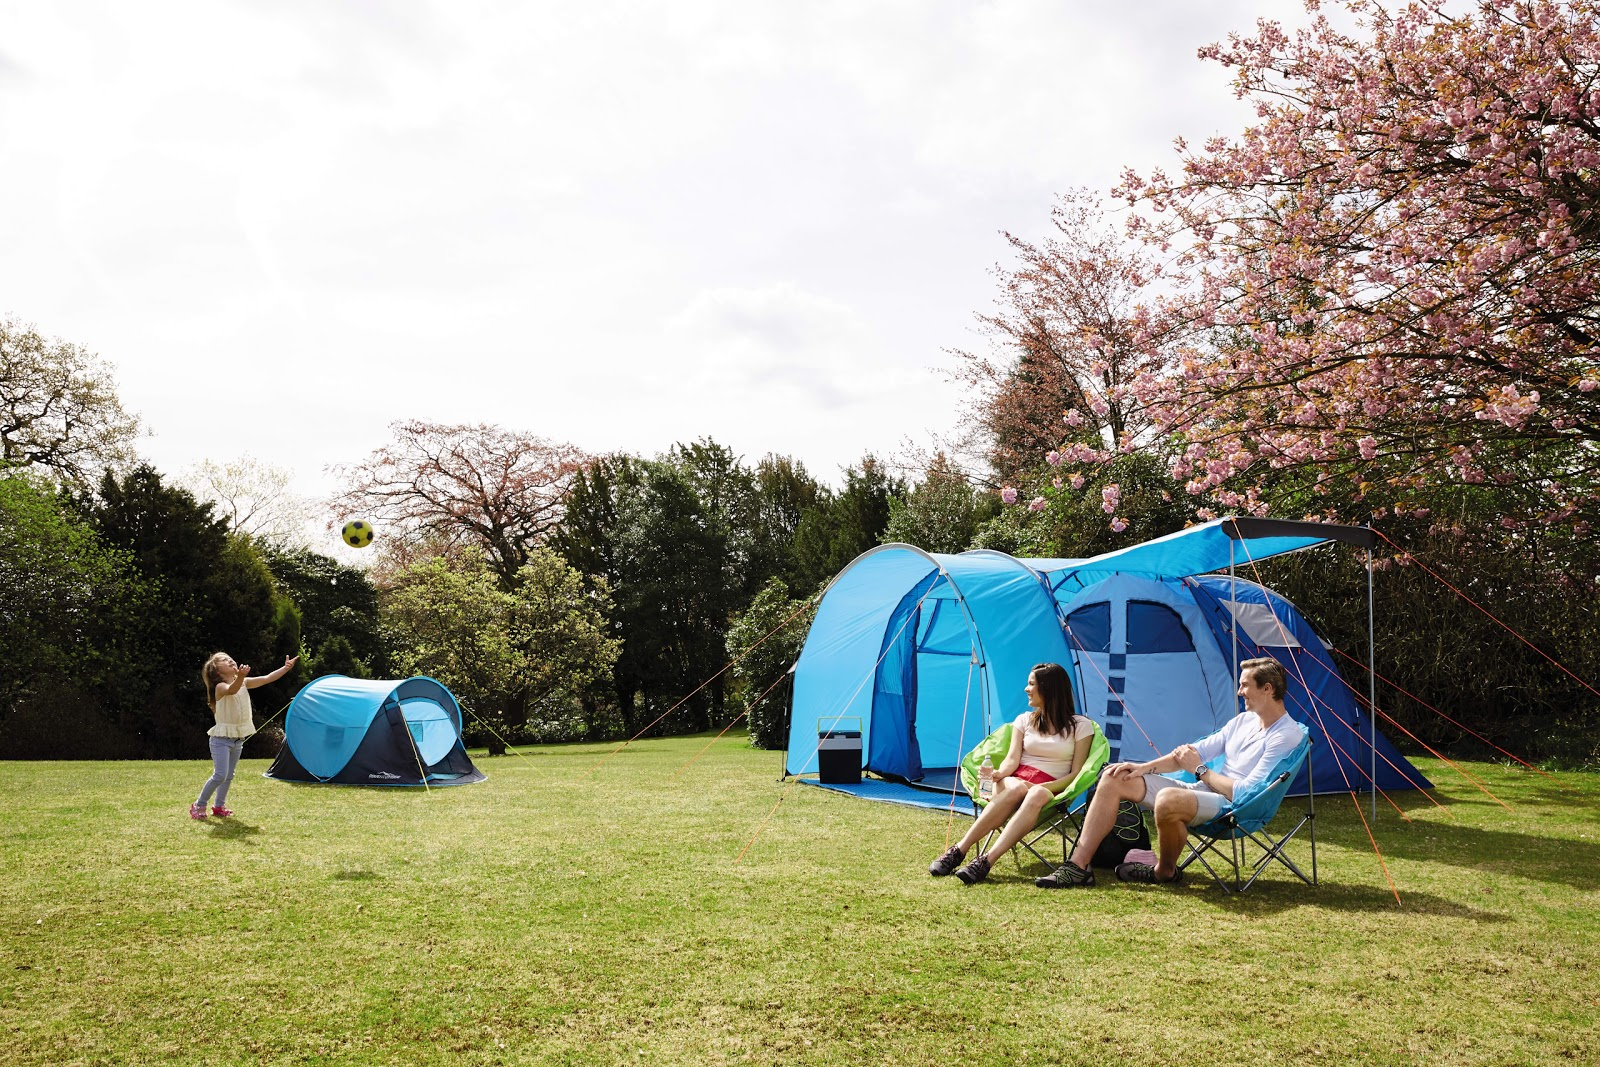 Aldi 5 person tent £79.99 and pop-up 2 person tent £19.99 & Me and my shadow: Camping deals with Aldi